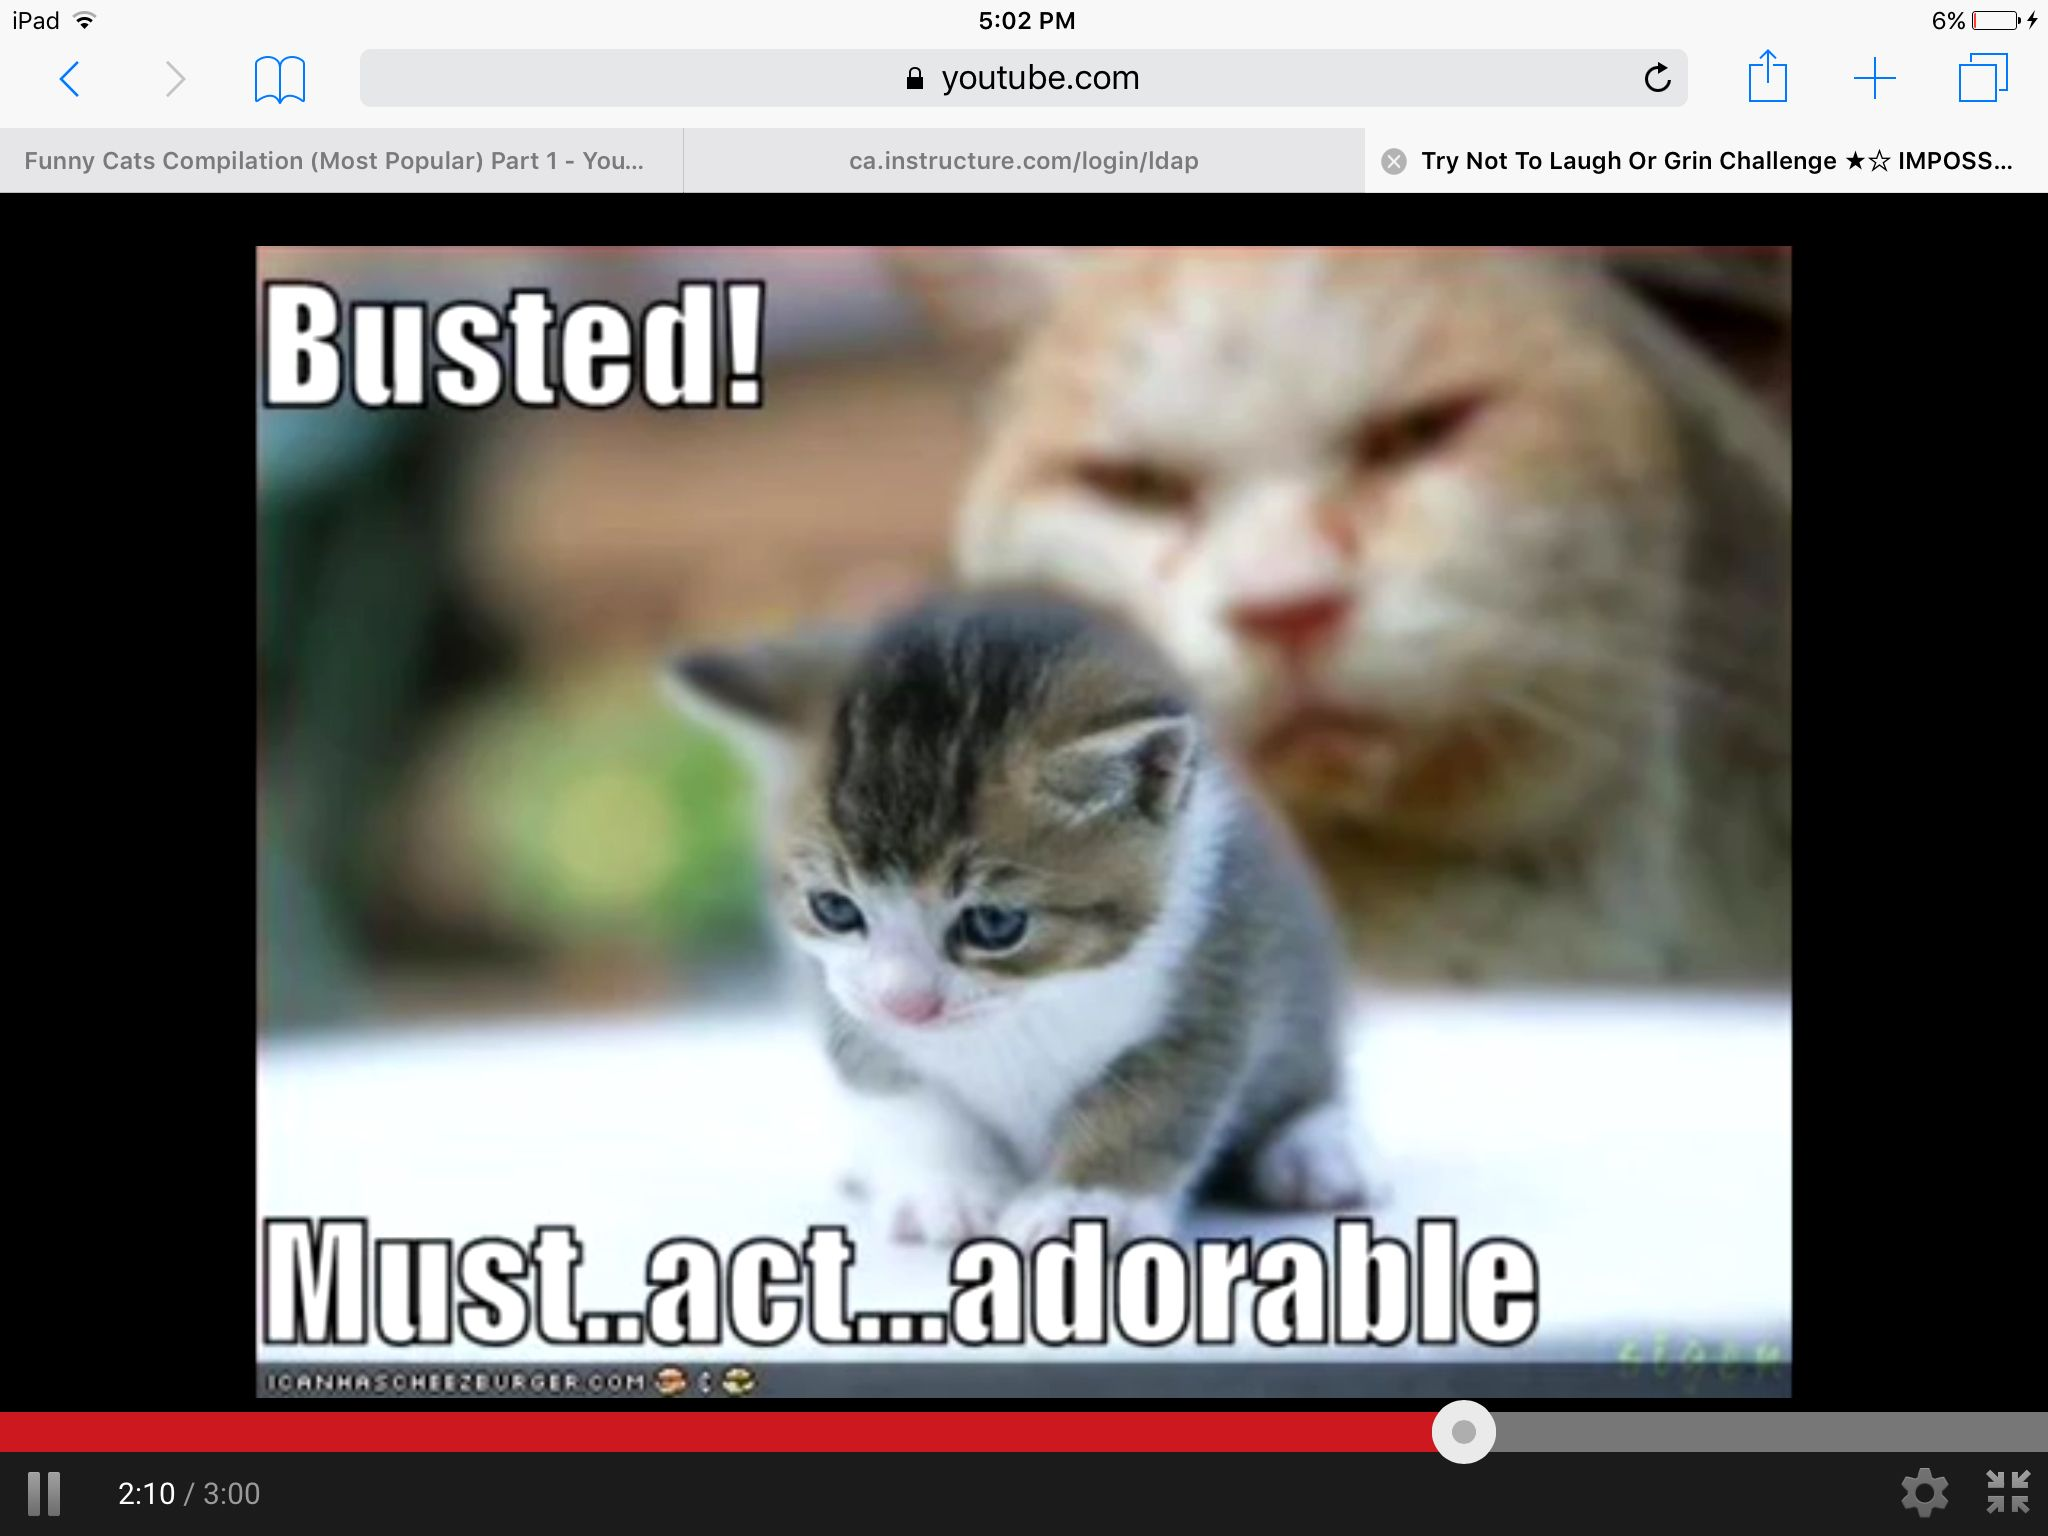 Pin by Kaitlyn McMichael on Funny cats (With images